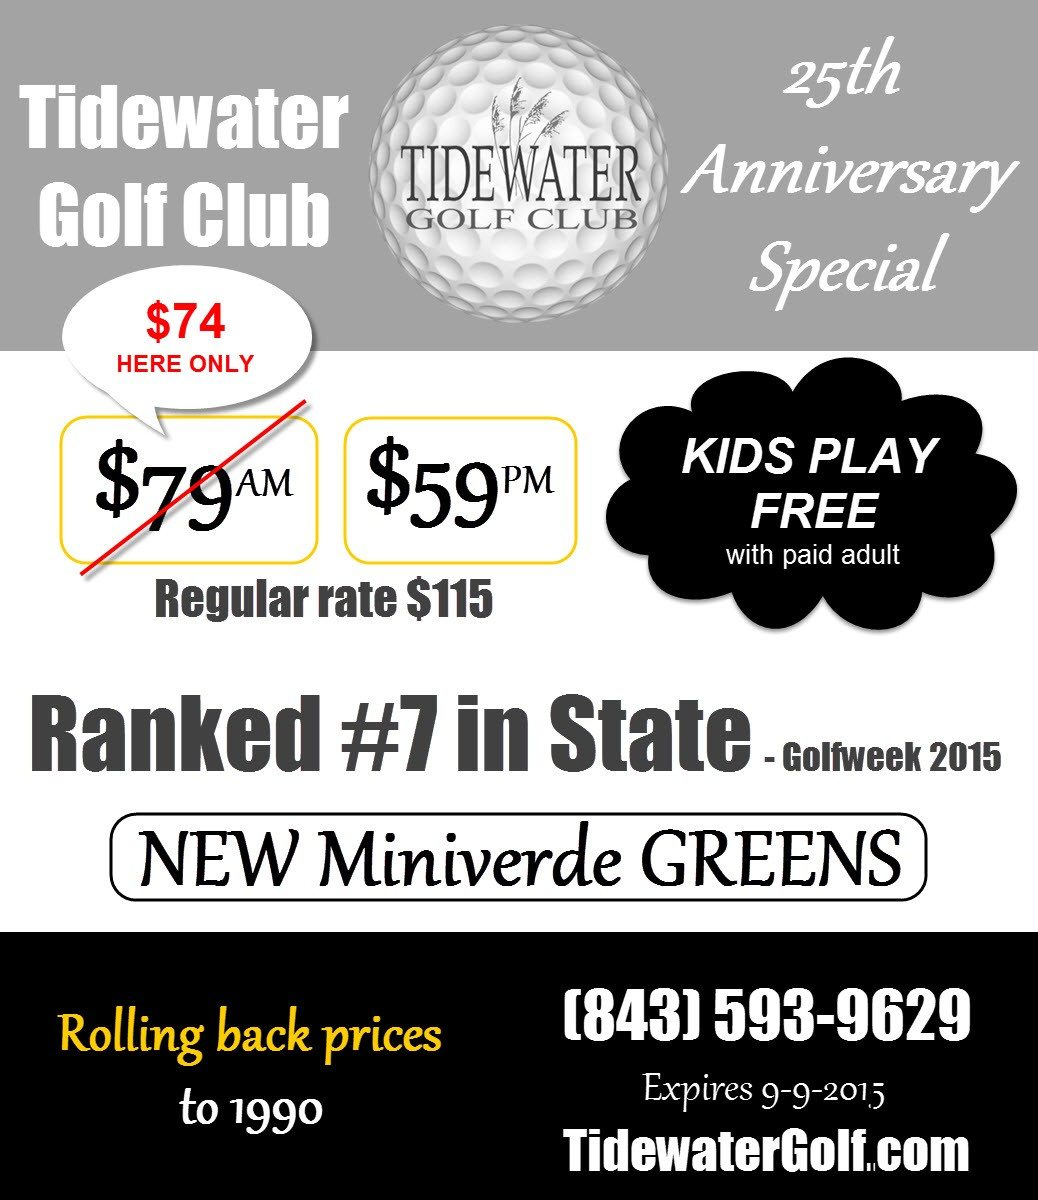 2015 Summer Golf Special at Tidewater Golf Club